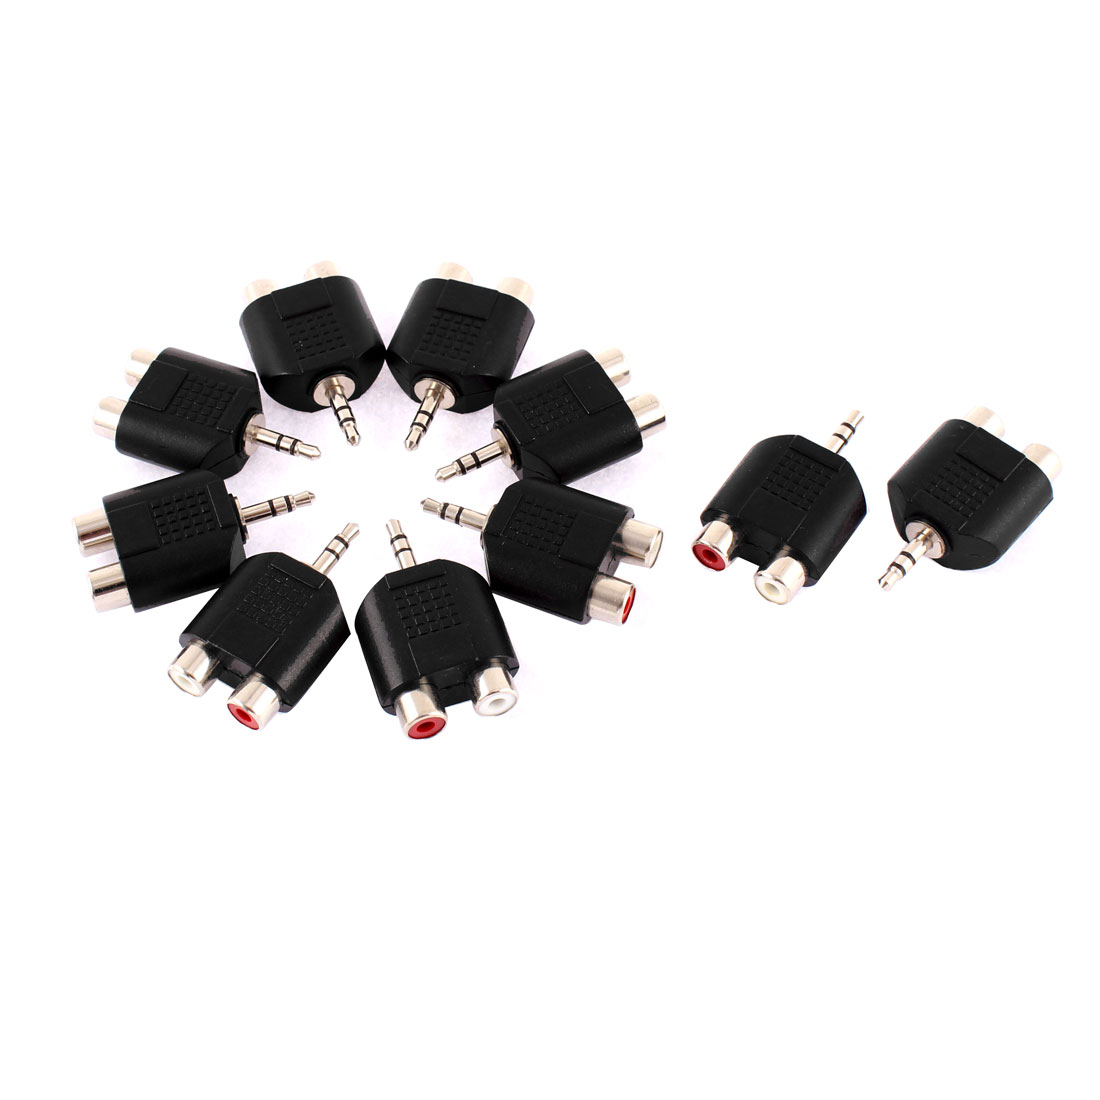 10pcs 3.5mm Male Mono Jack to 2 RCA Female Video Audio Adapter Splitter Connector